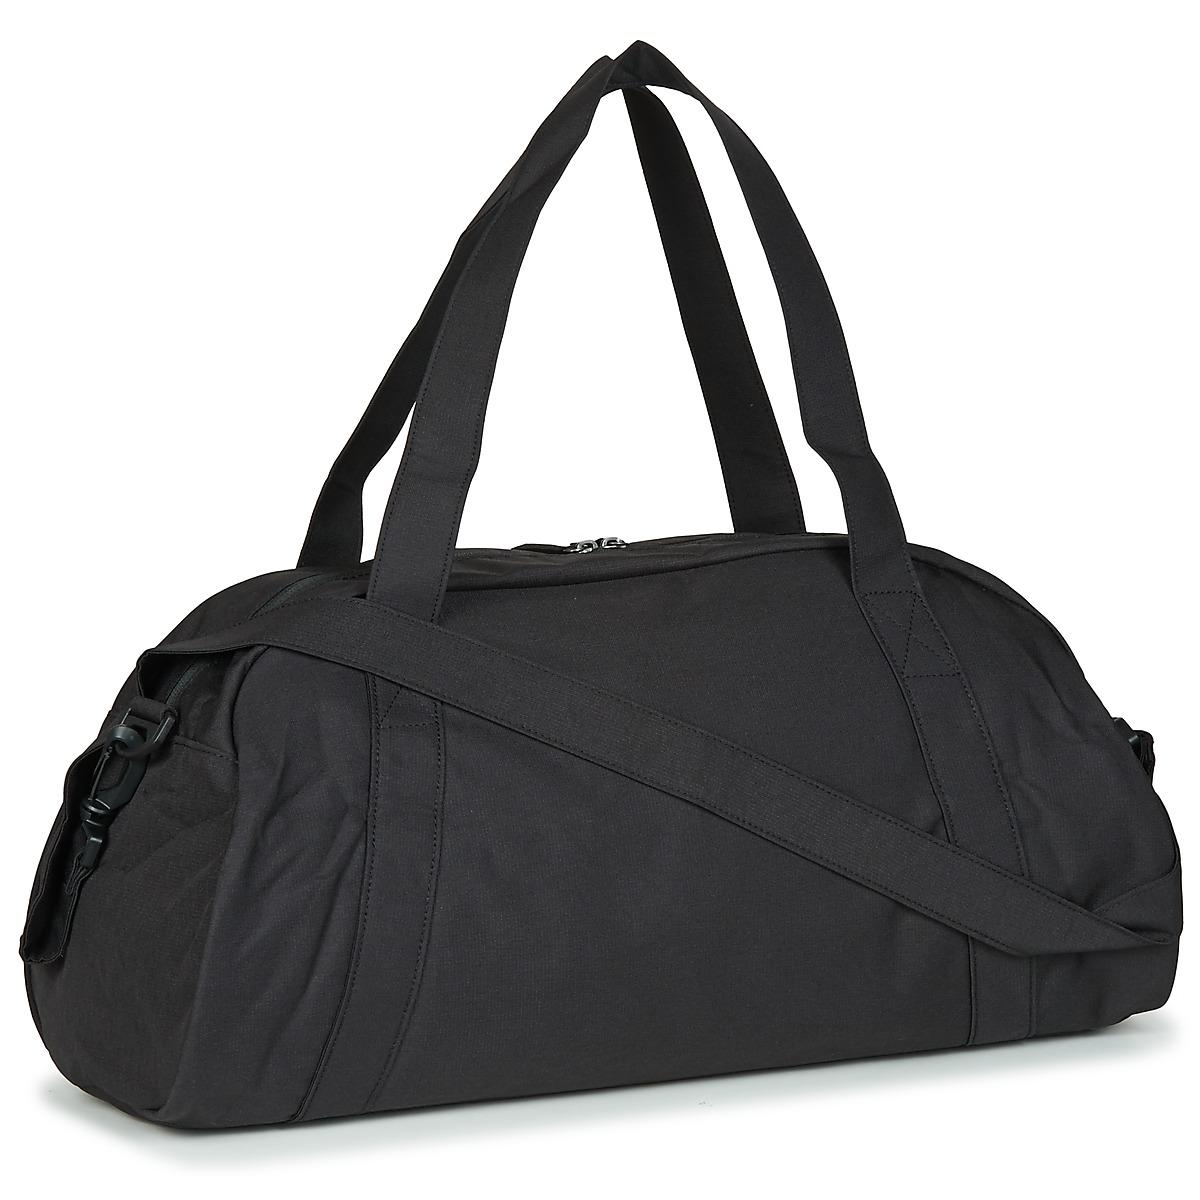 7fbaf710f9d43e Nike Gym Club Training Duffel Bag Sports Bag in Black for Men - Lyst